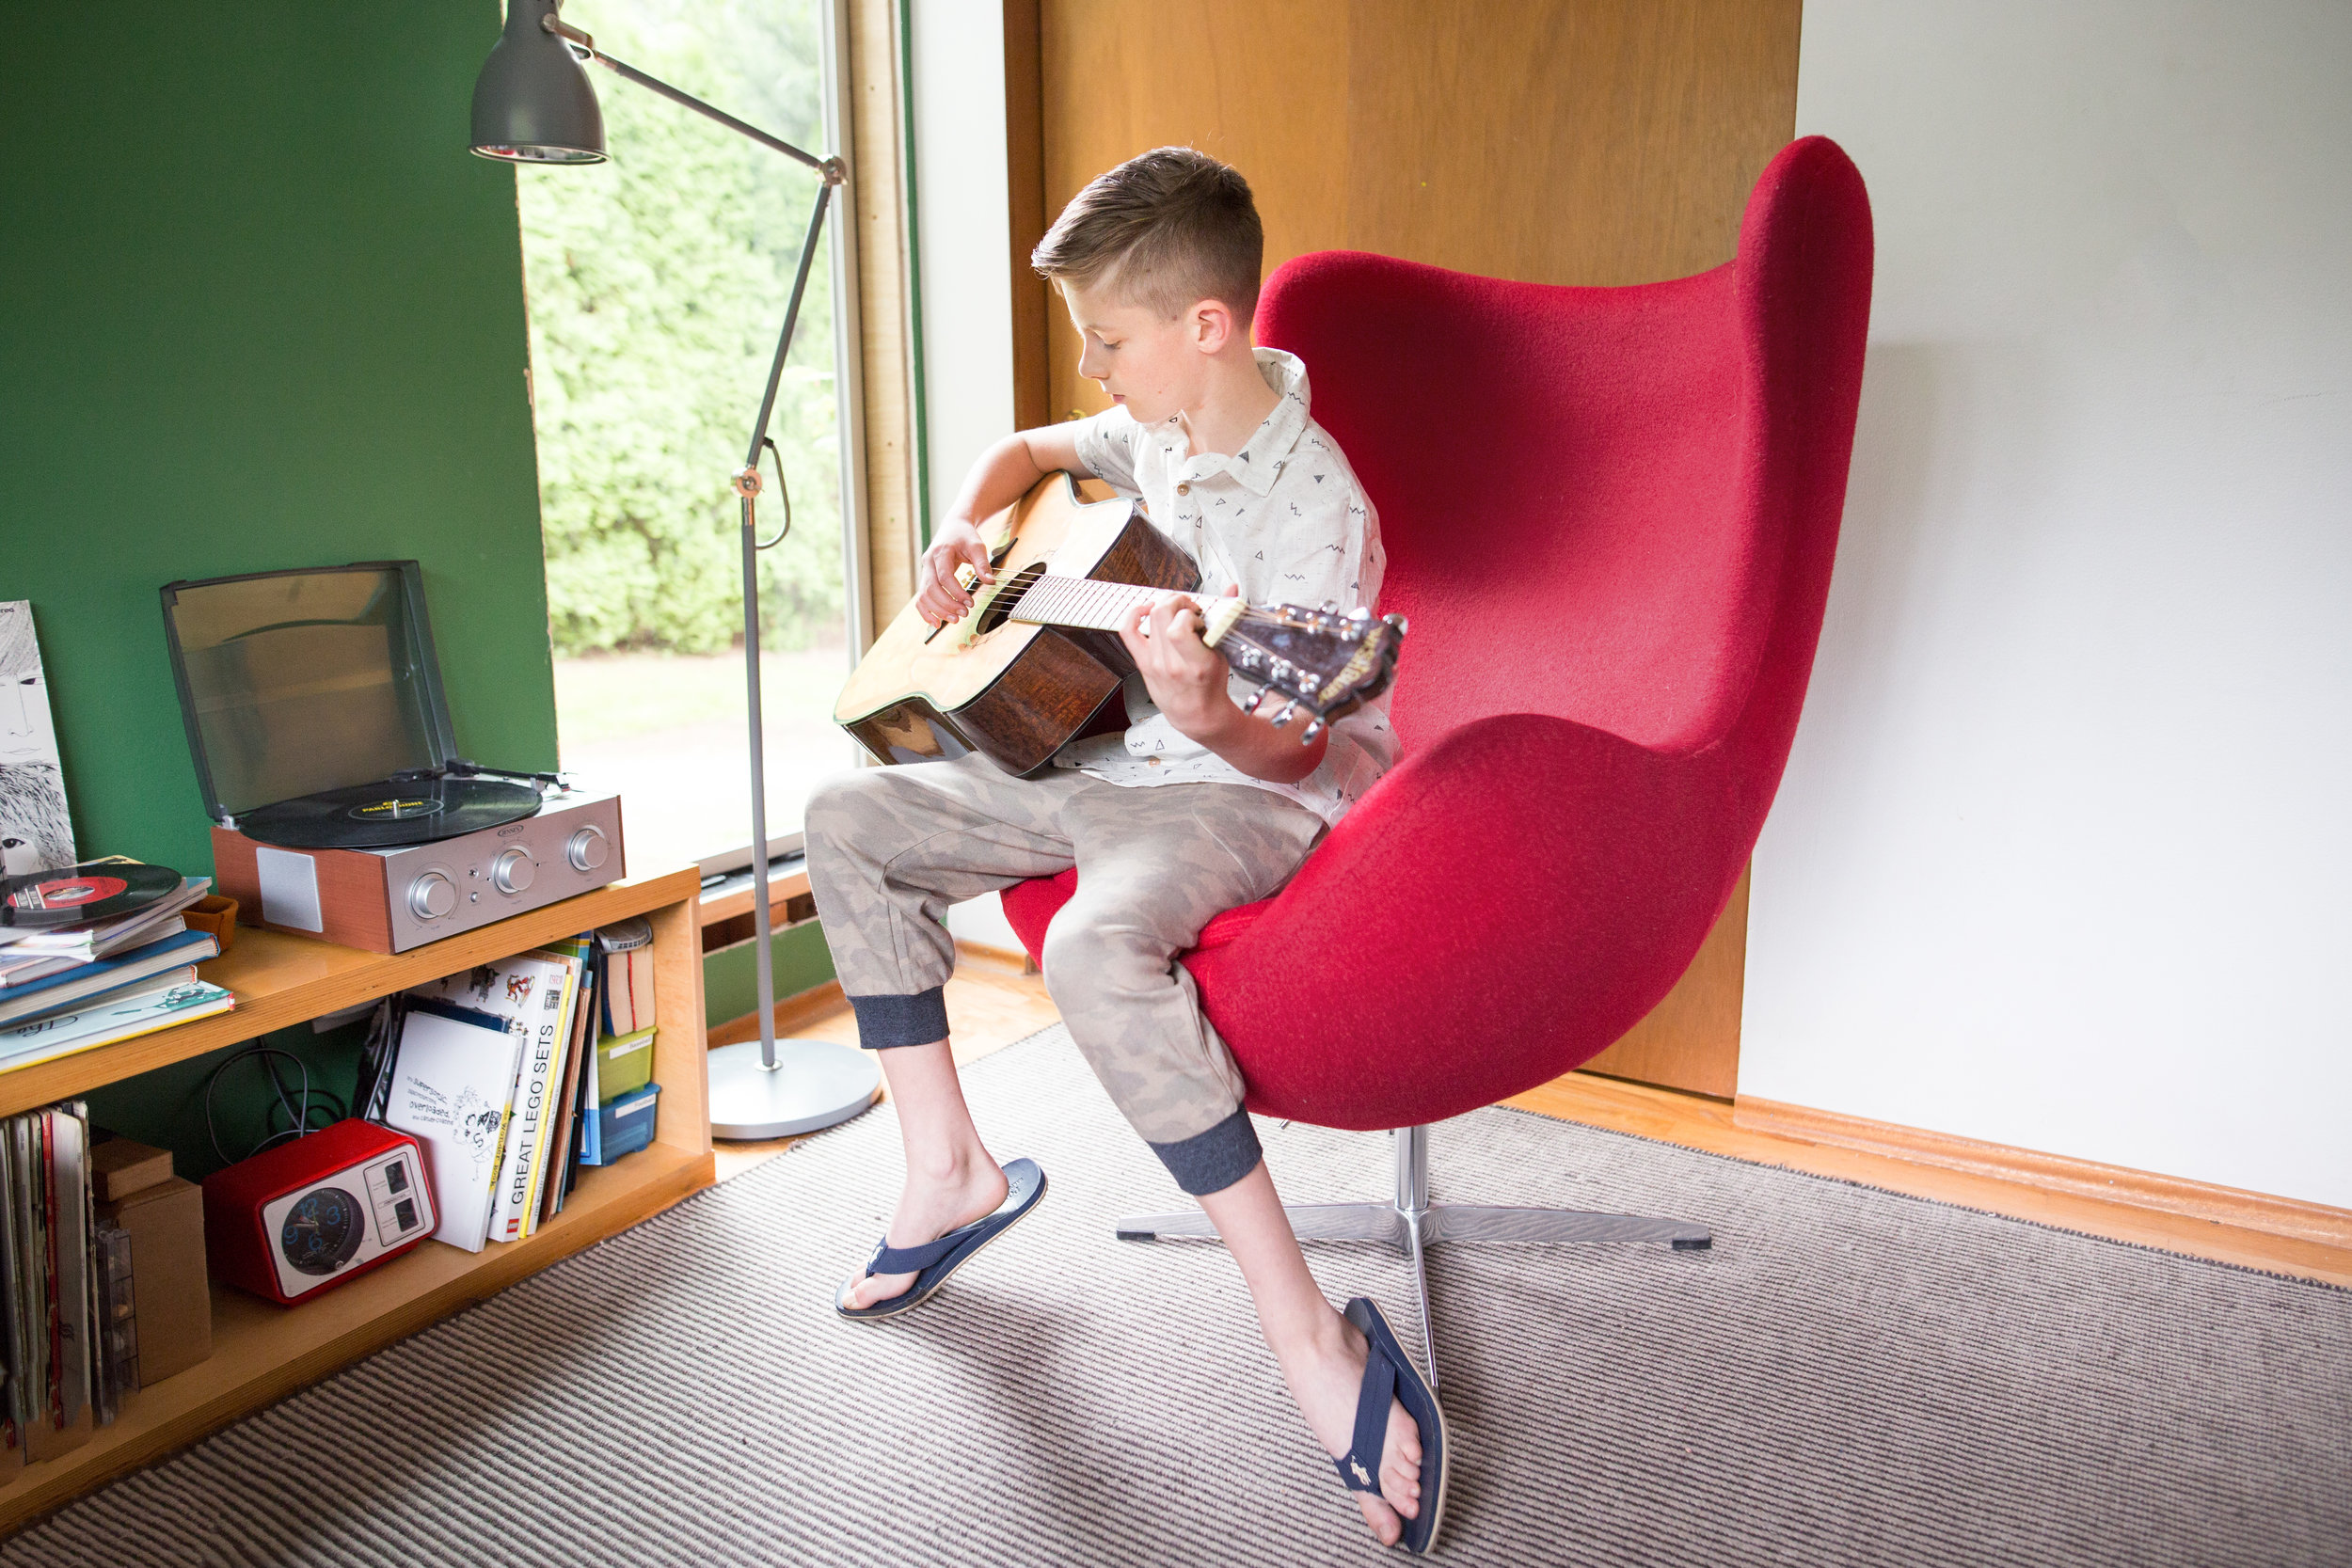 teenaged boy in room, playing guitar, family photo shoot